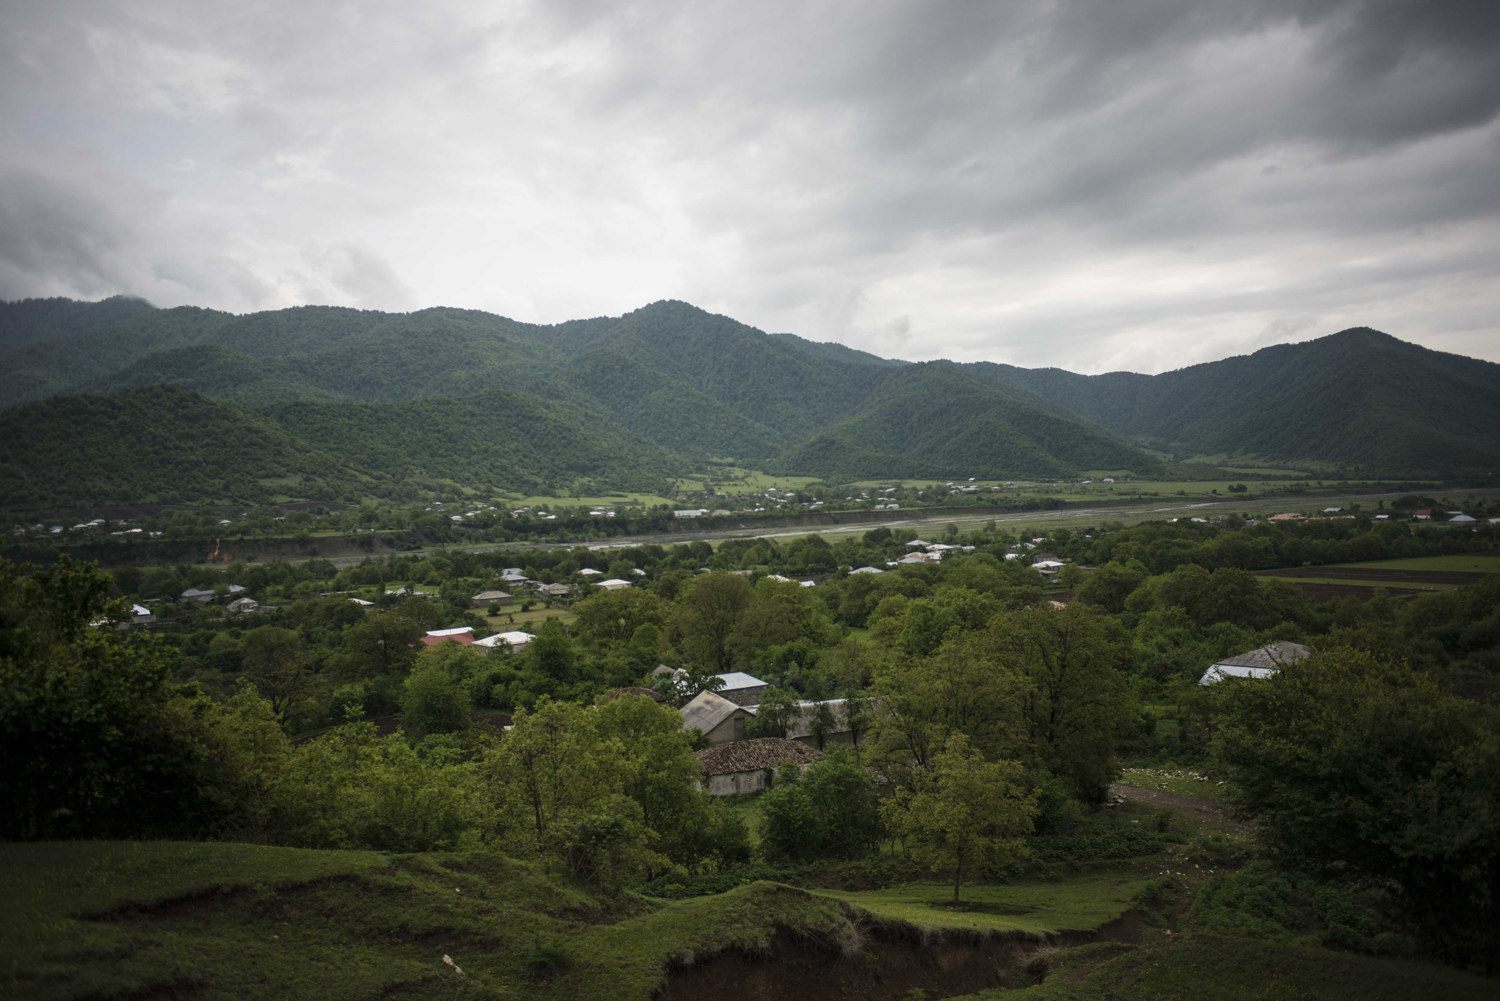 The Pankisi Valley, a secluded muslim village in the hills of Georgia. This traditionally muslim area has seen a resurgance of sufism.